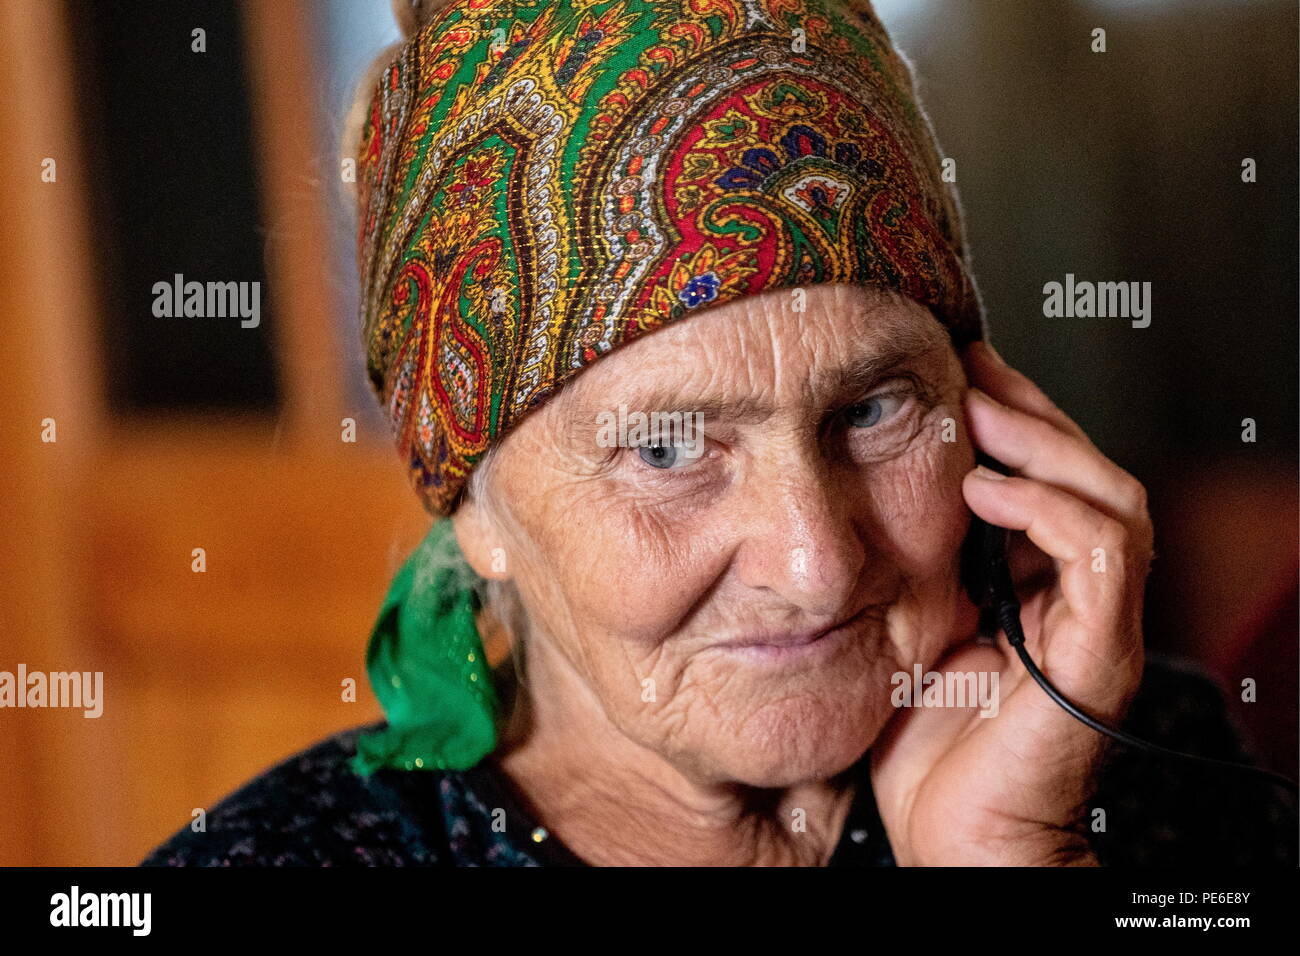 South Ossetia. 11th Aug, 2018. SOUTH OSSETIA - AUGUST 11, 2018: Margarita Madzigova, 63, poses at home in the village of Khetagurovo, Tskhinvali District, South Ossetia; Margarita and her husband Alikhan have been running a farm since their house was restored after the 2008 South Ossetian-Georgian military conflict. Sergei Bobylev/TASS Credit: ITAR-TASS News Agency/Alamy Live News - Stock Image